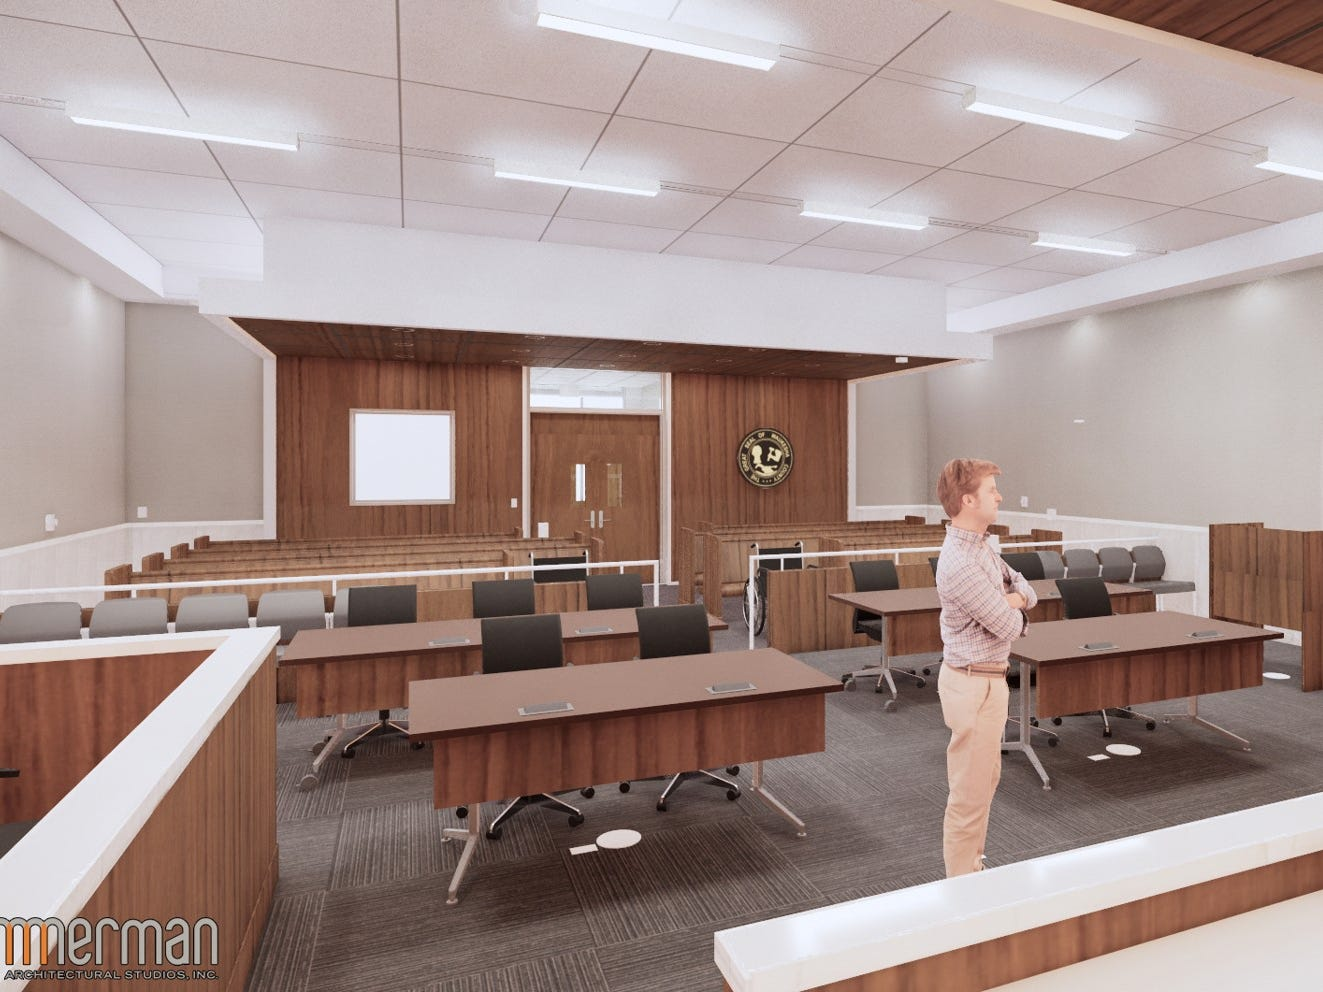 This rendering shows an example of what one of the eight new courtrooms at the Waukesha County Courthouse might look like once construction is complete in 2021. This view faces the gallery, with the jury seating to the left.